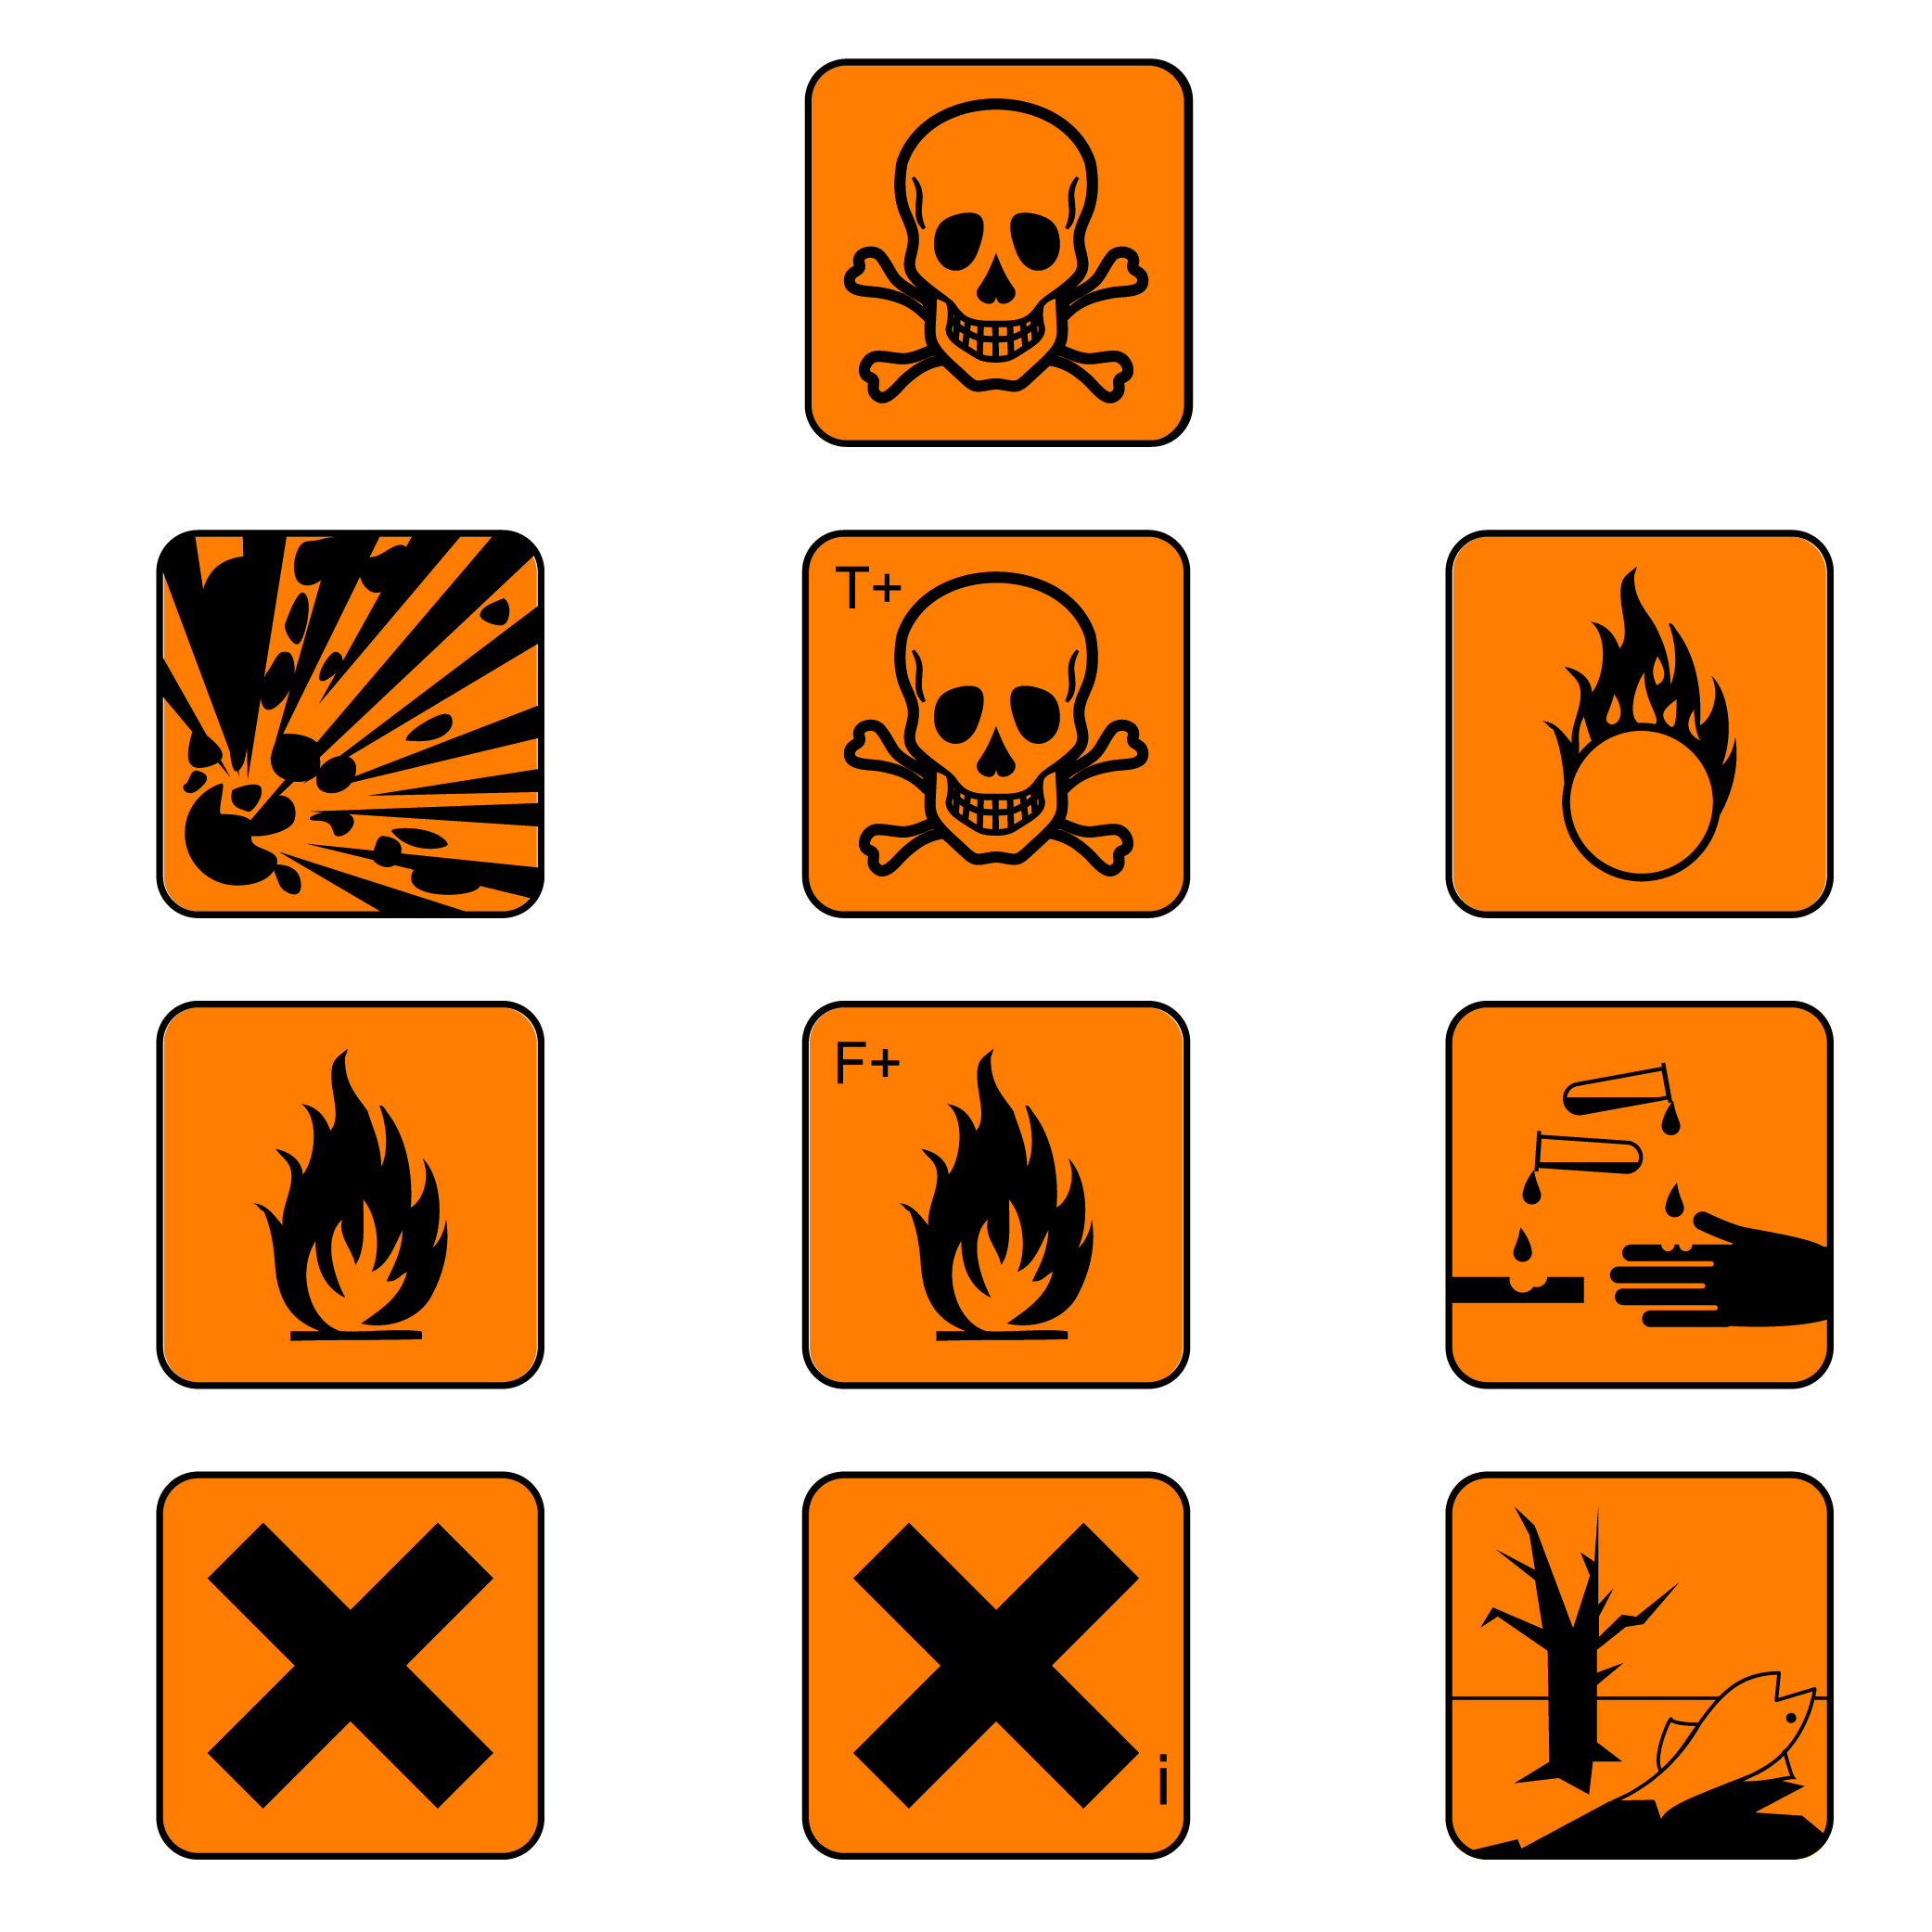 New Hazard Warning Symbols For Cleaning Products How Many Can You